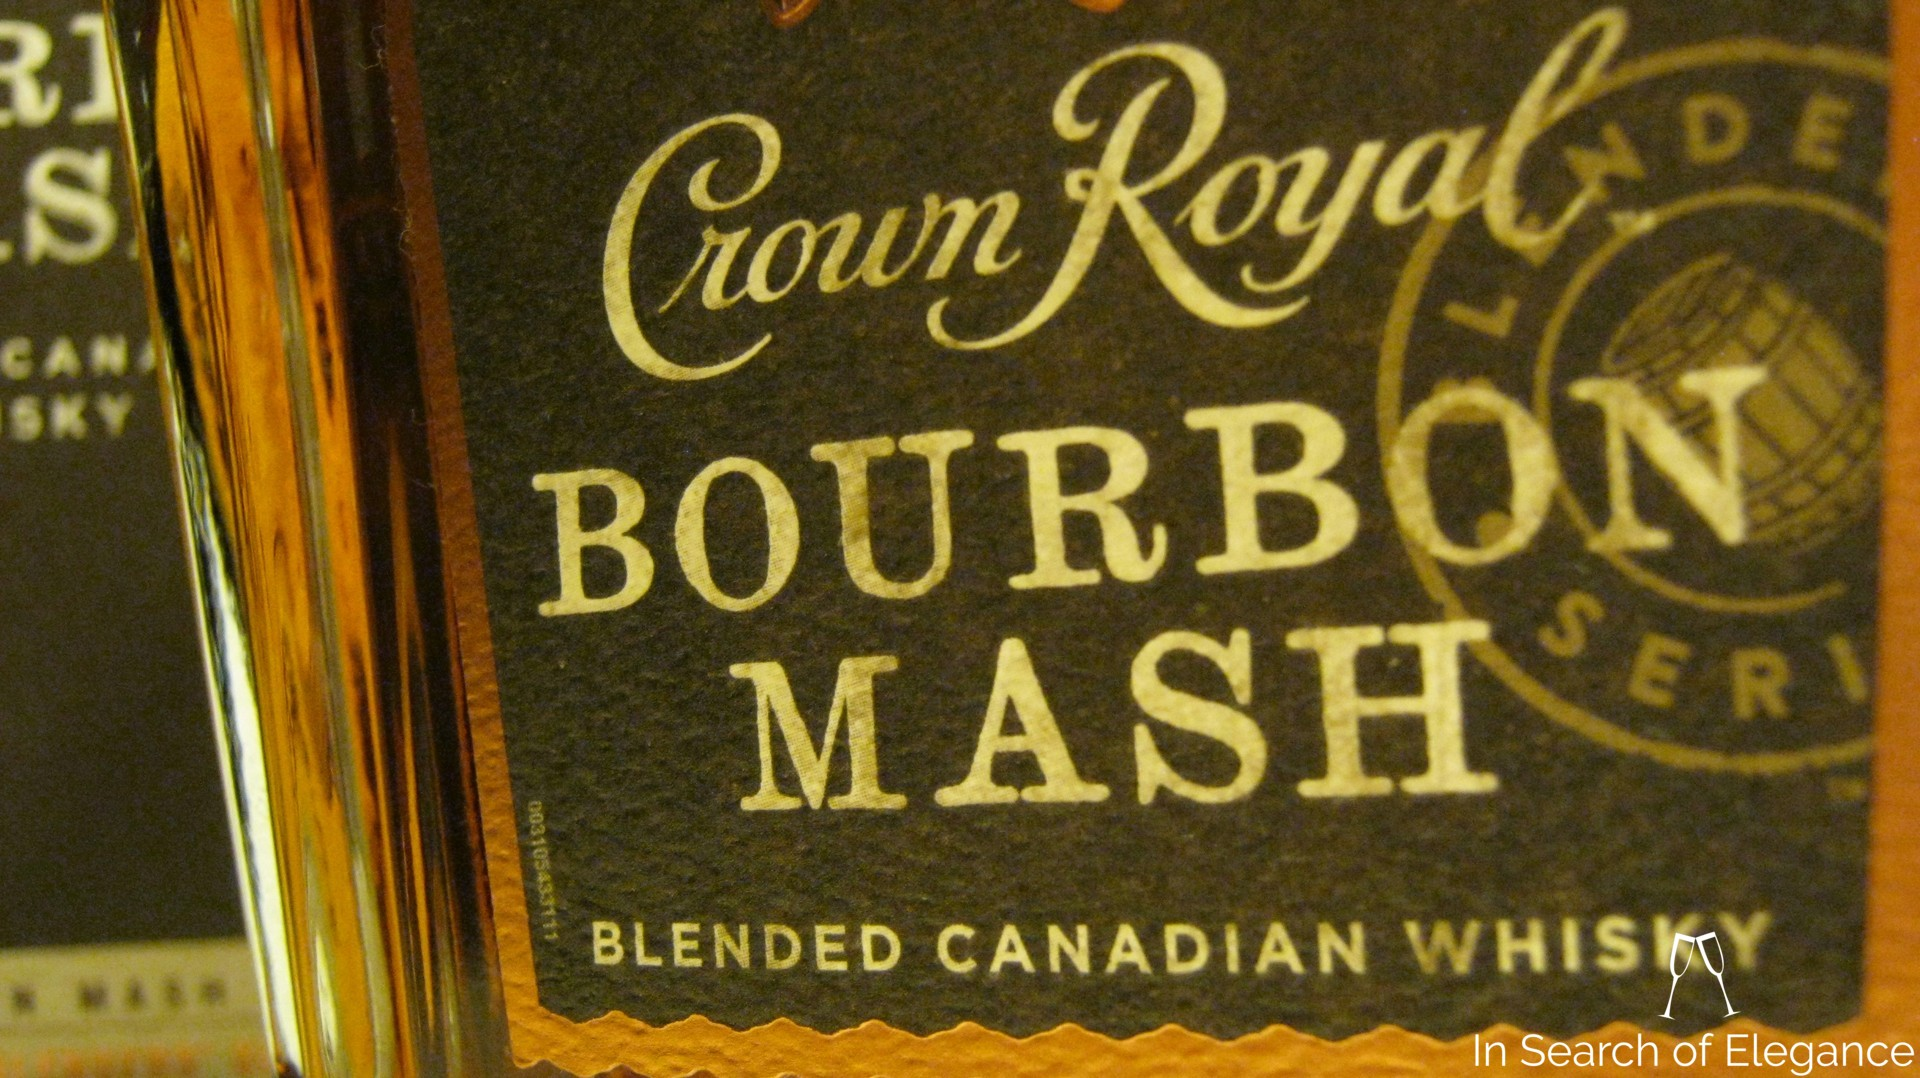 Crown Royal Bourbon Mash 2.jpg